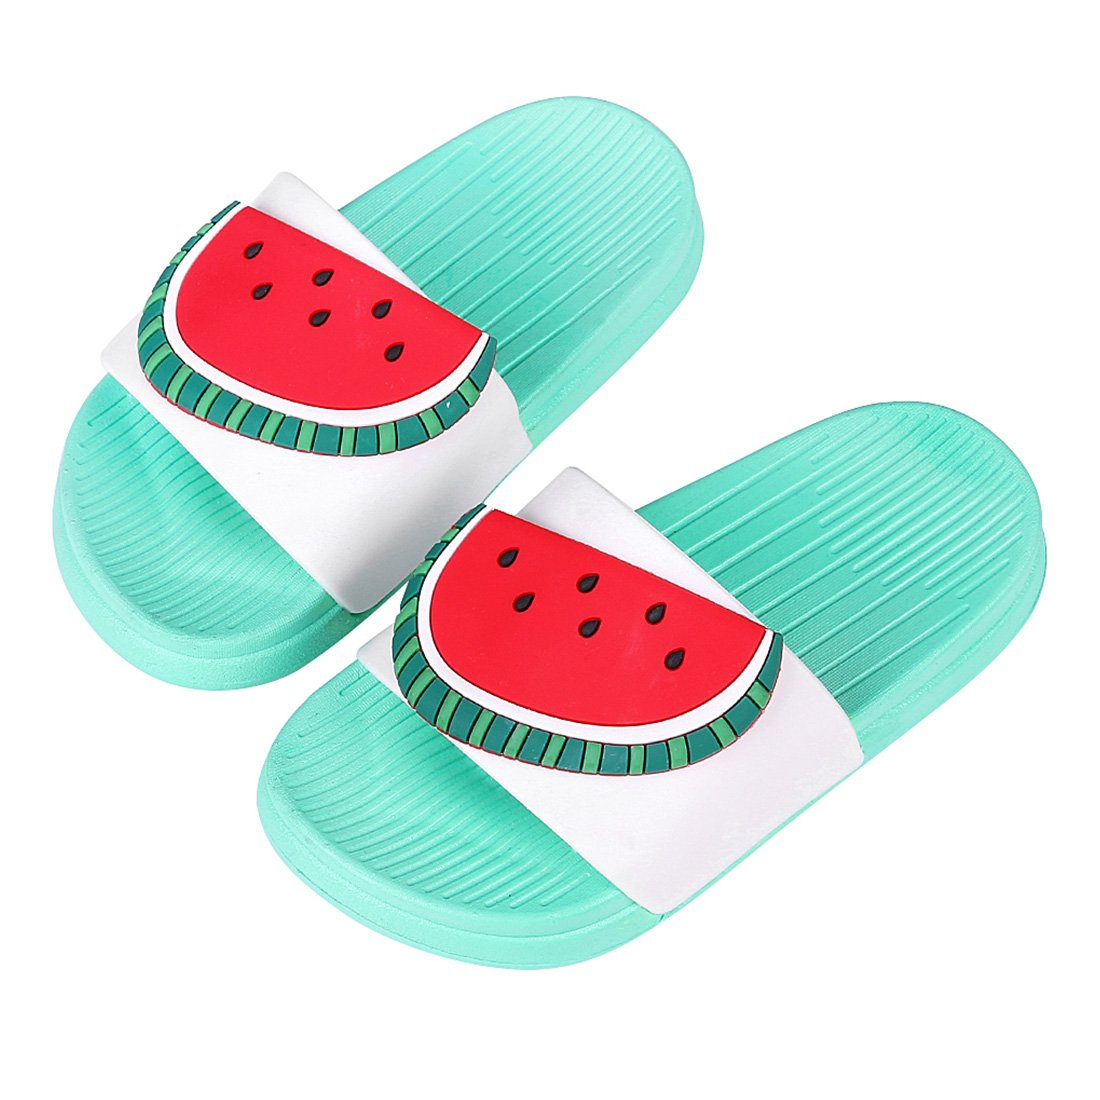 Cute Bath Slippers Colorful Fruit Beach Sandals Shower Shoes for Adults and Kids AQ21